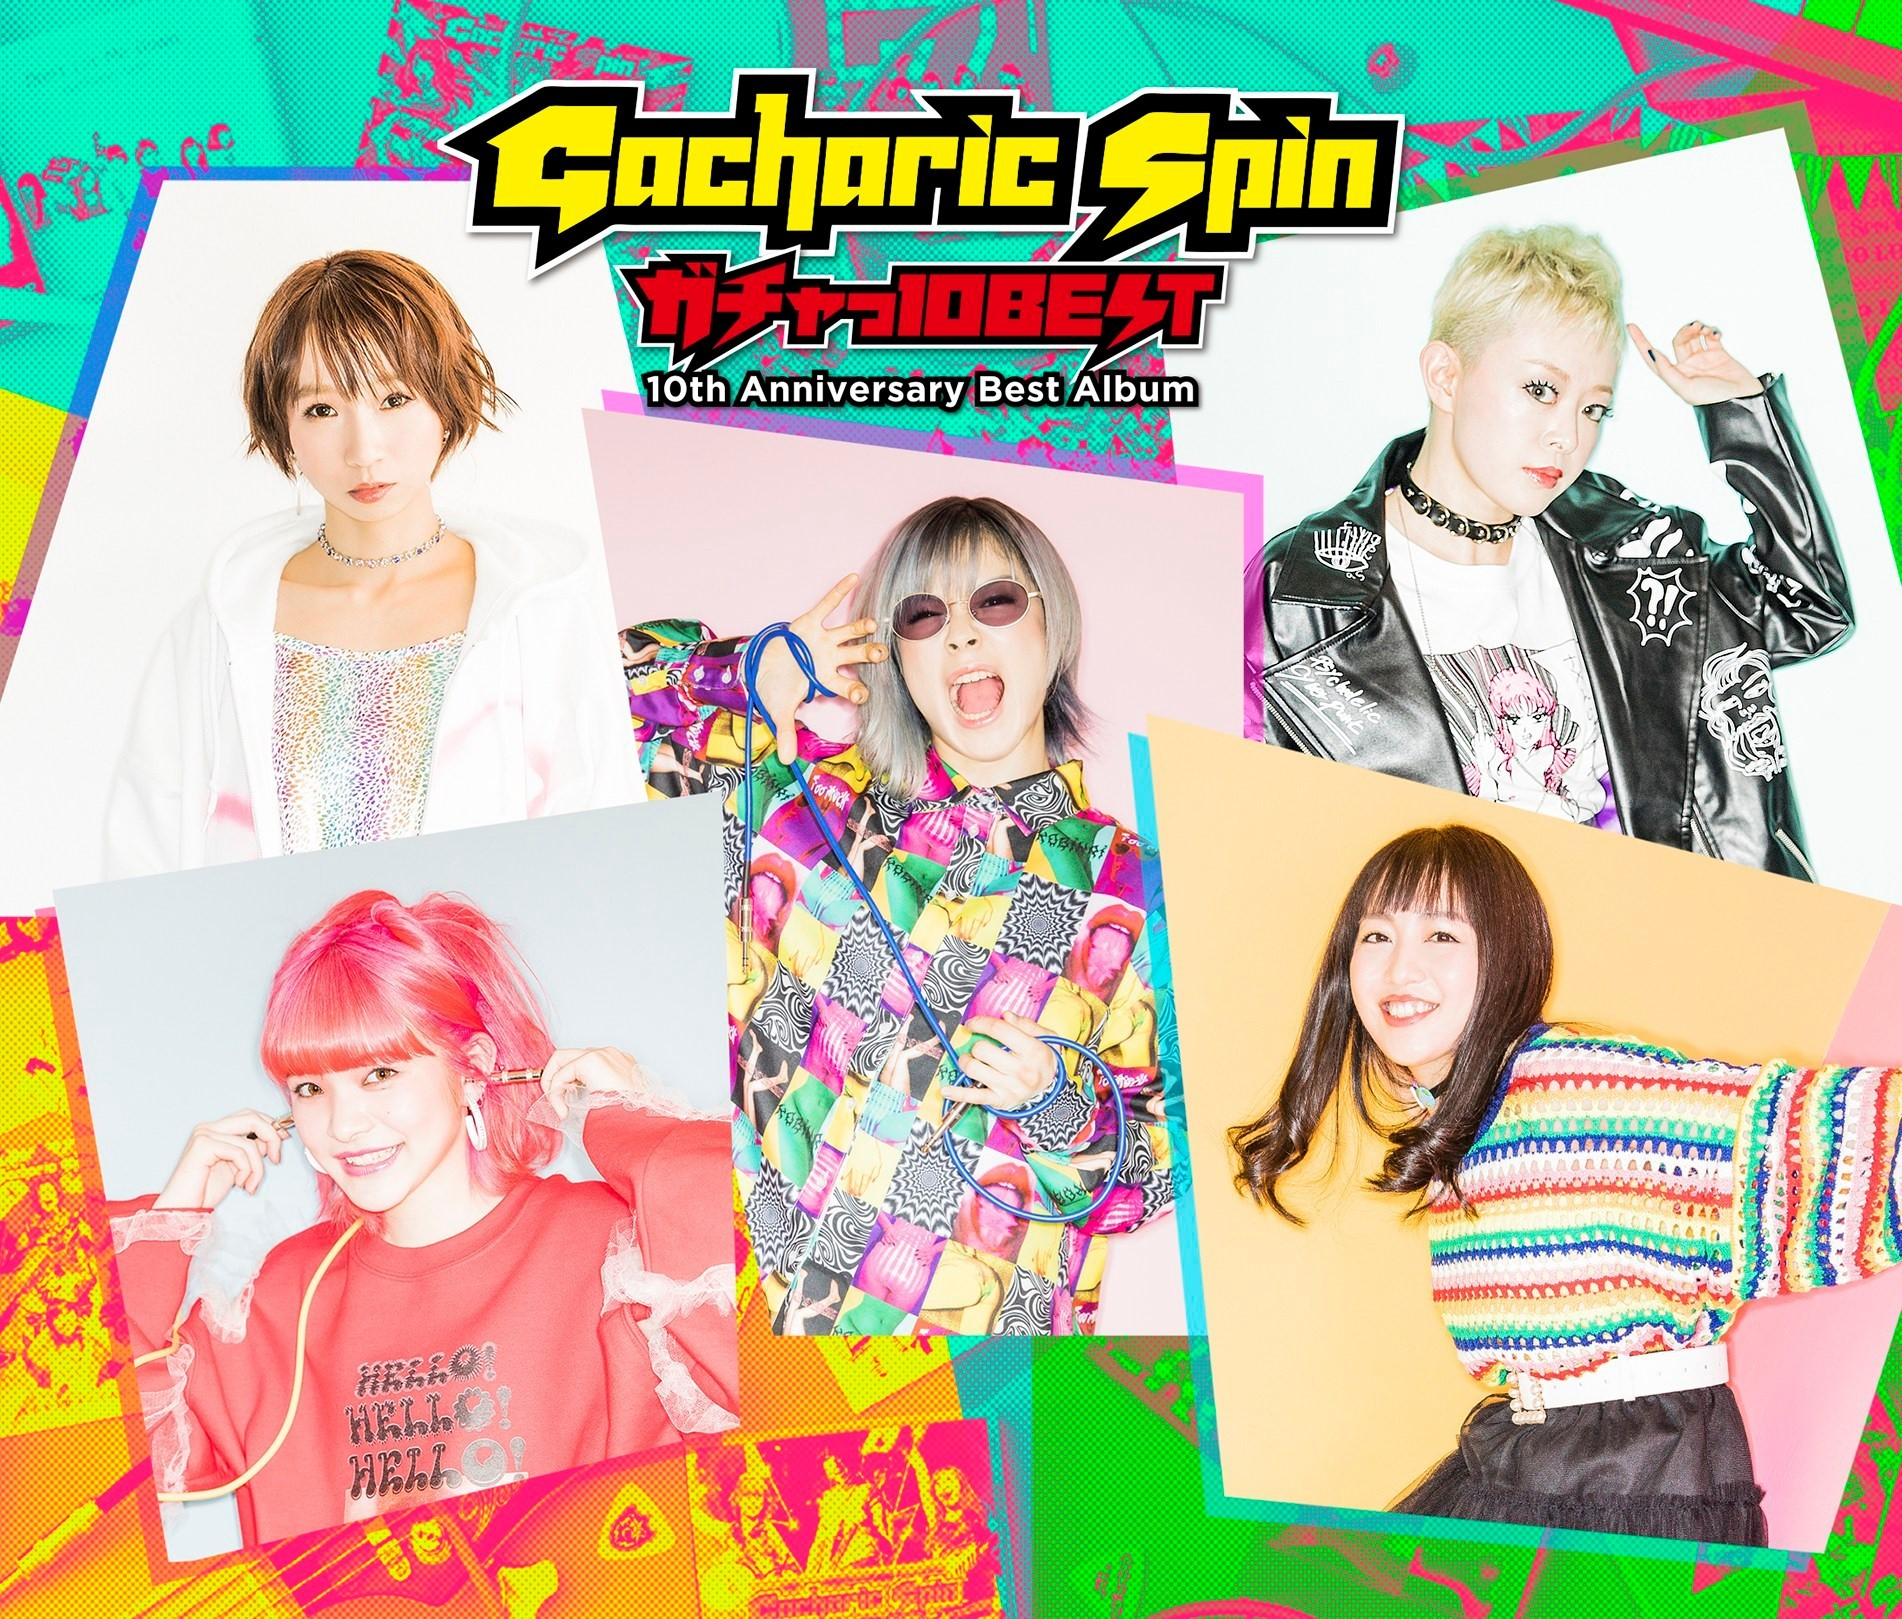 Gacharic Spin – ガチャっ10BEST [FLAC + MP3 320 + Blu-Ray ISO] [2019.03.27]